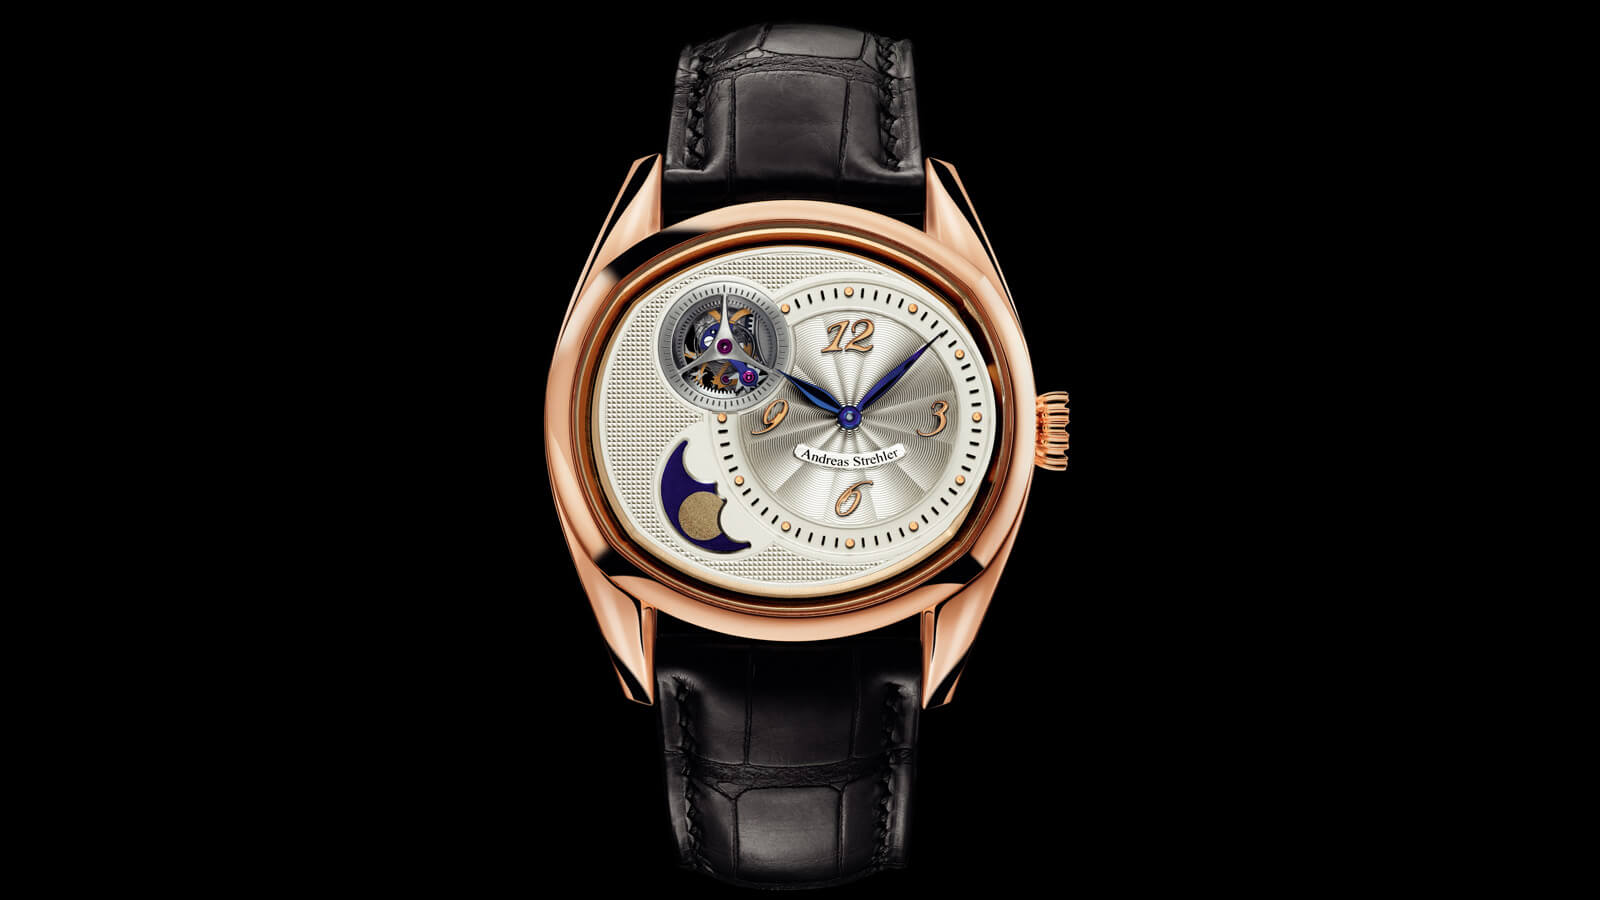 Image of Andreas Strehler Sauterelle a Lune Perpetuelle